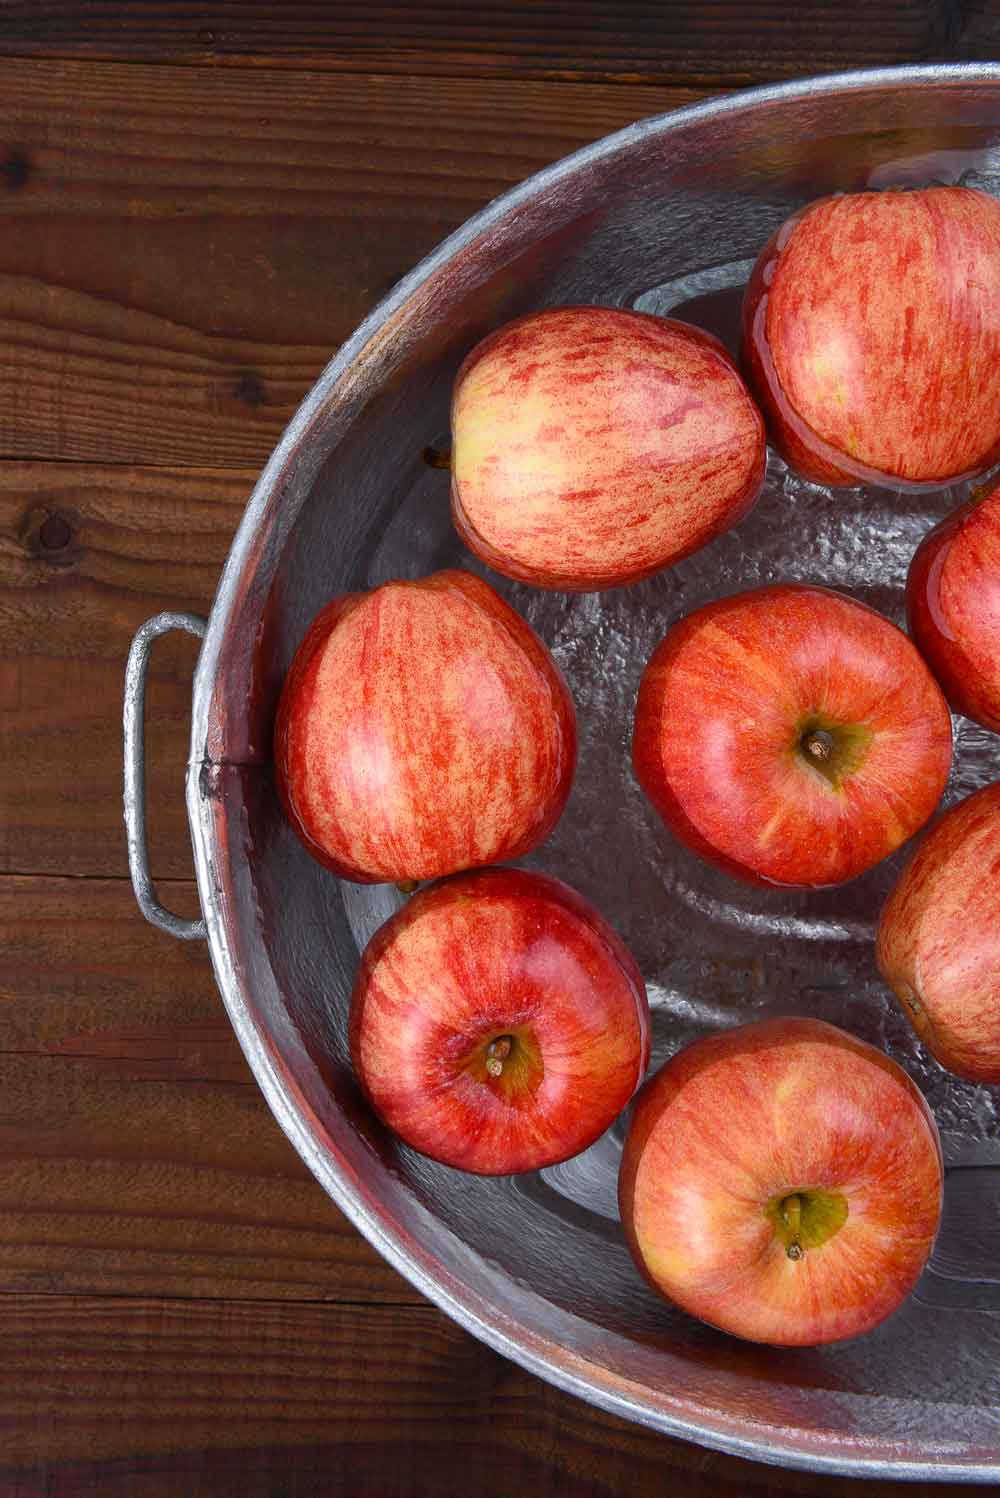 A silver basin of red apples in water.